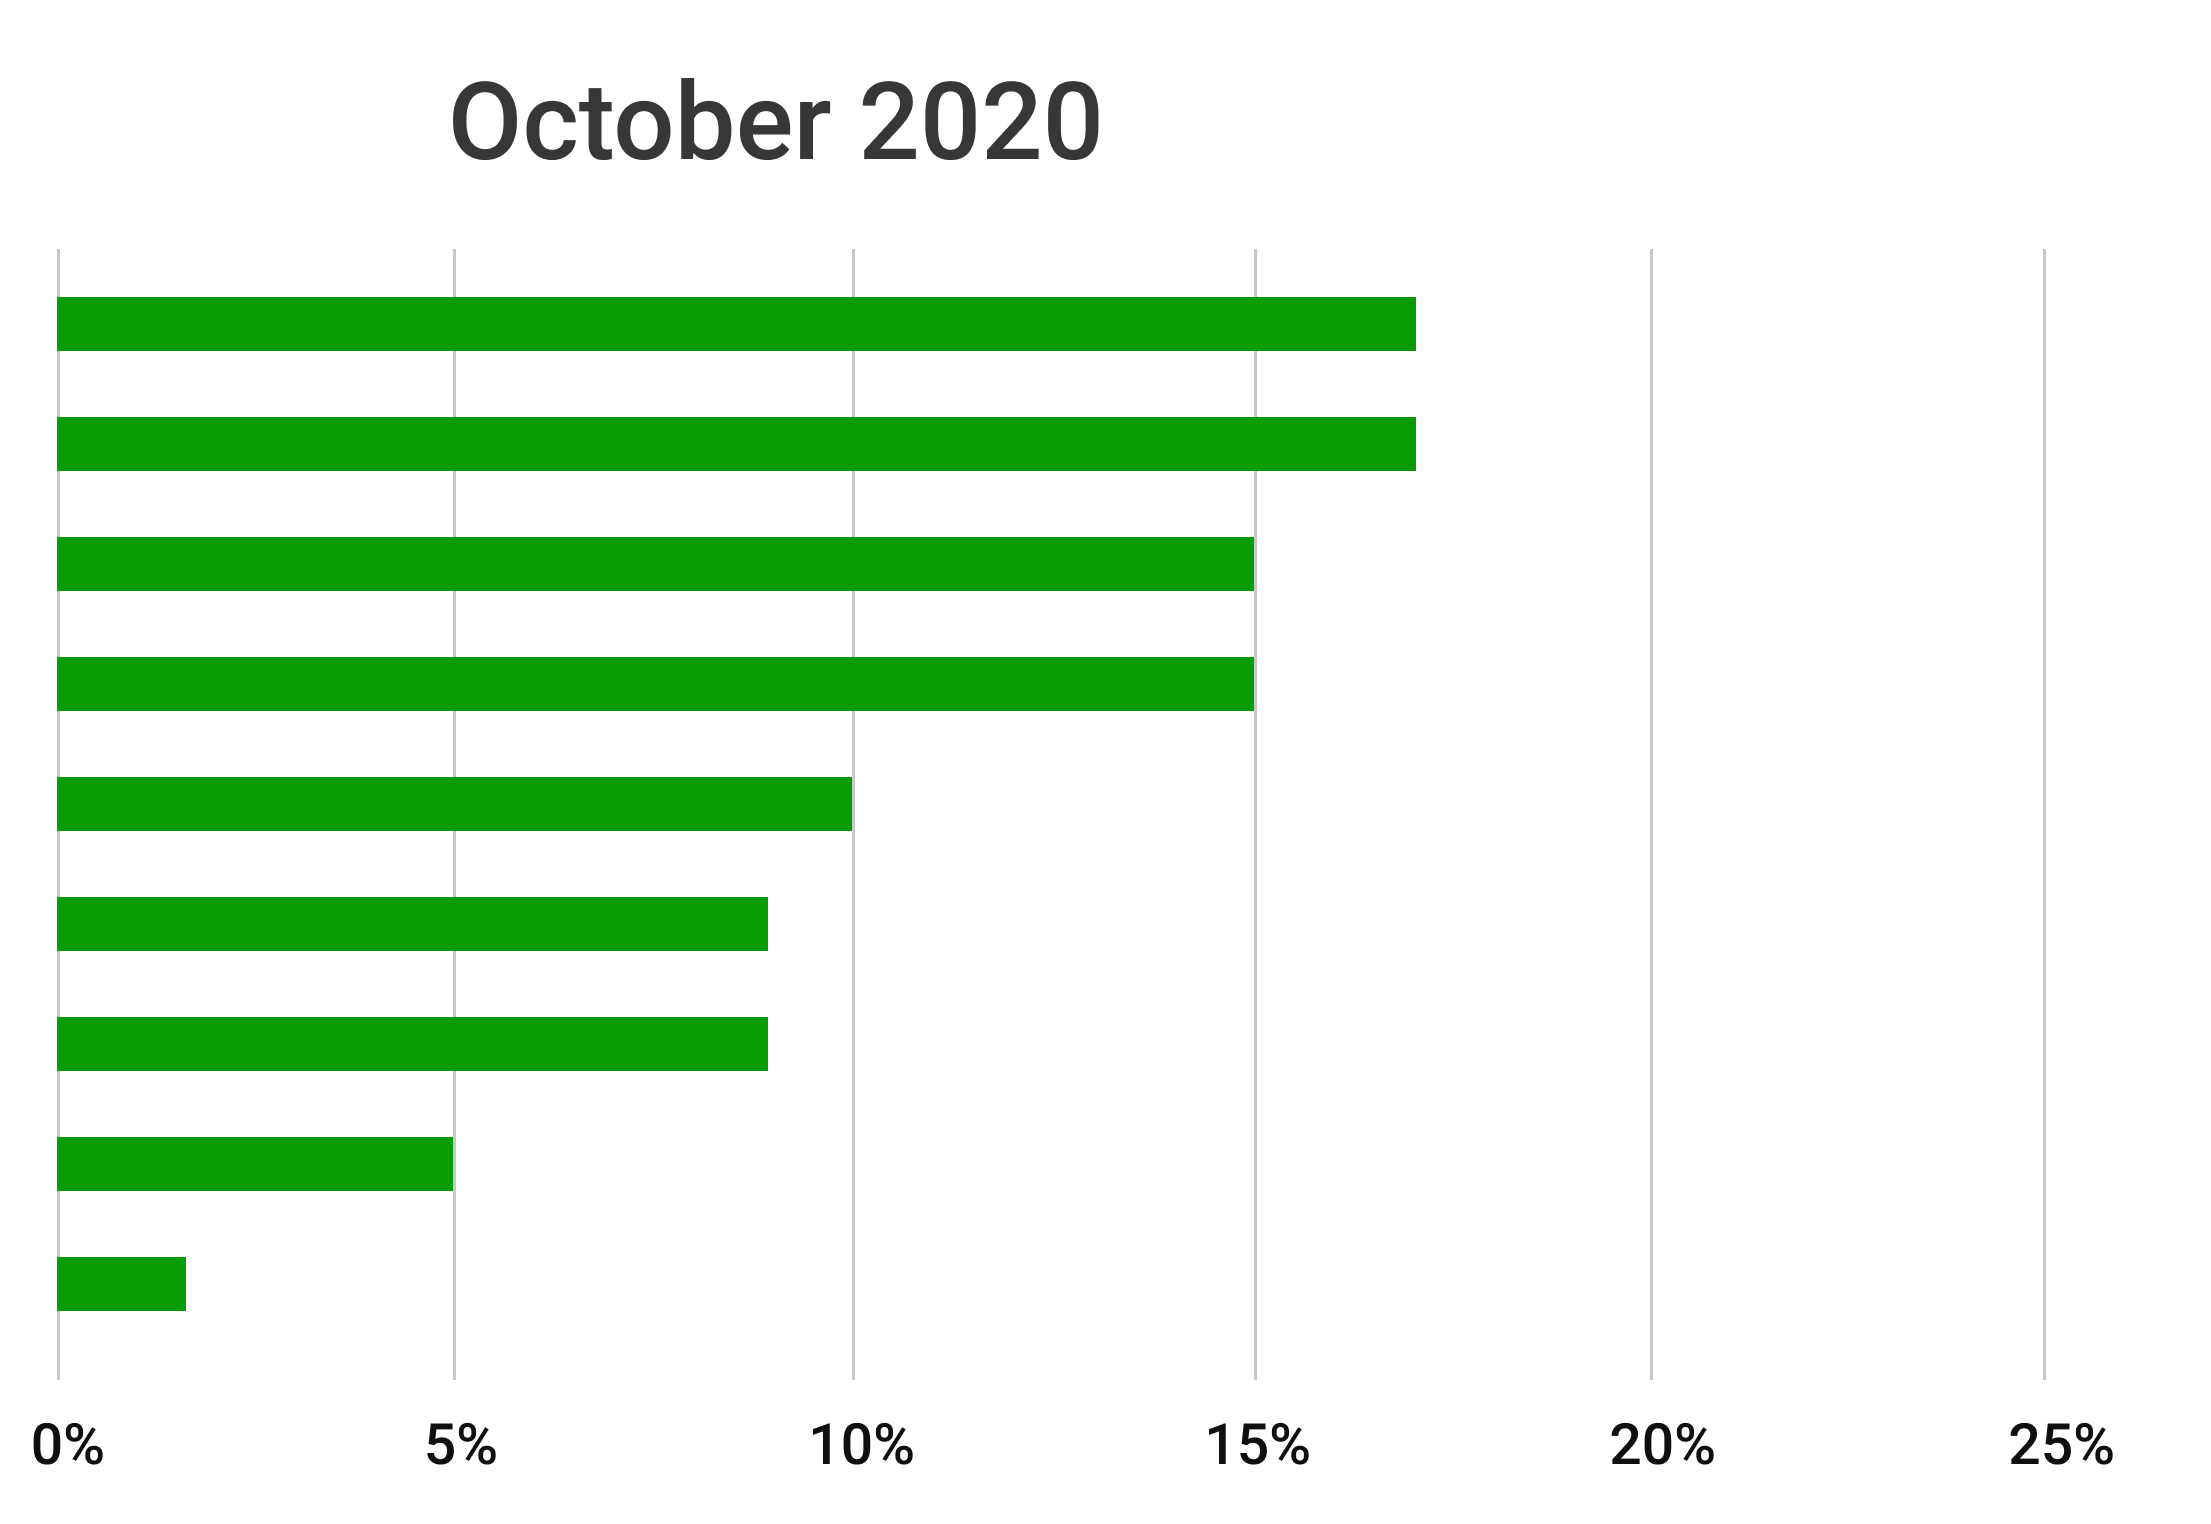 October 2020, most popular golf betting games in Beezer Golf